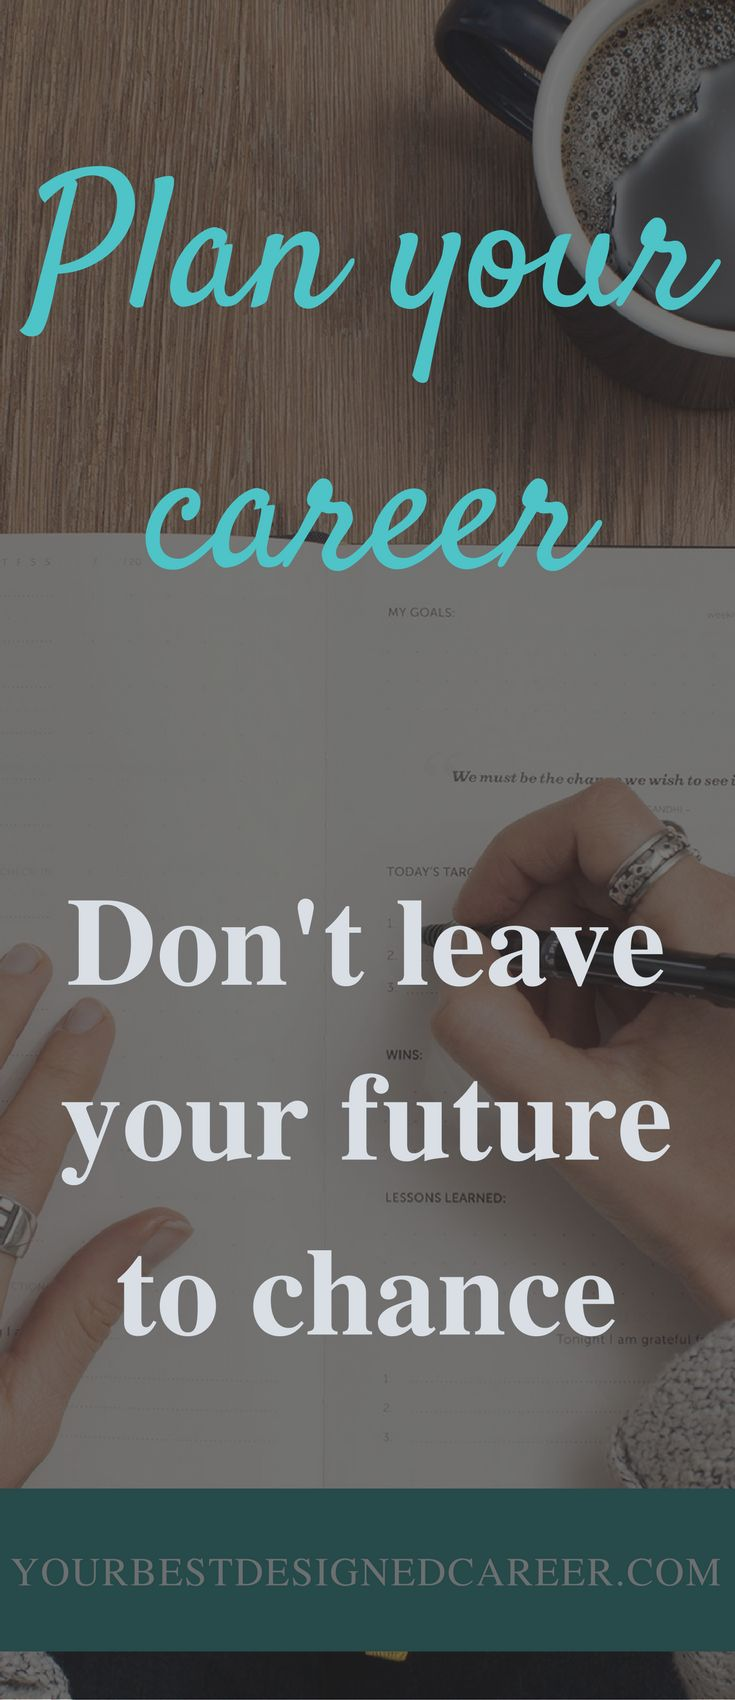 career, career development, career planning, career change